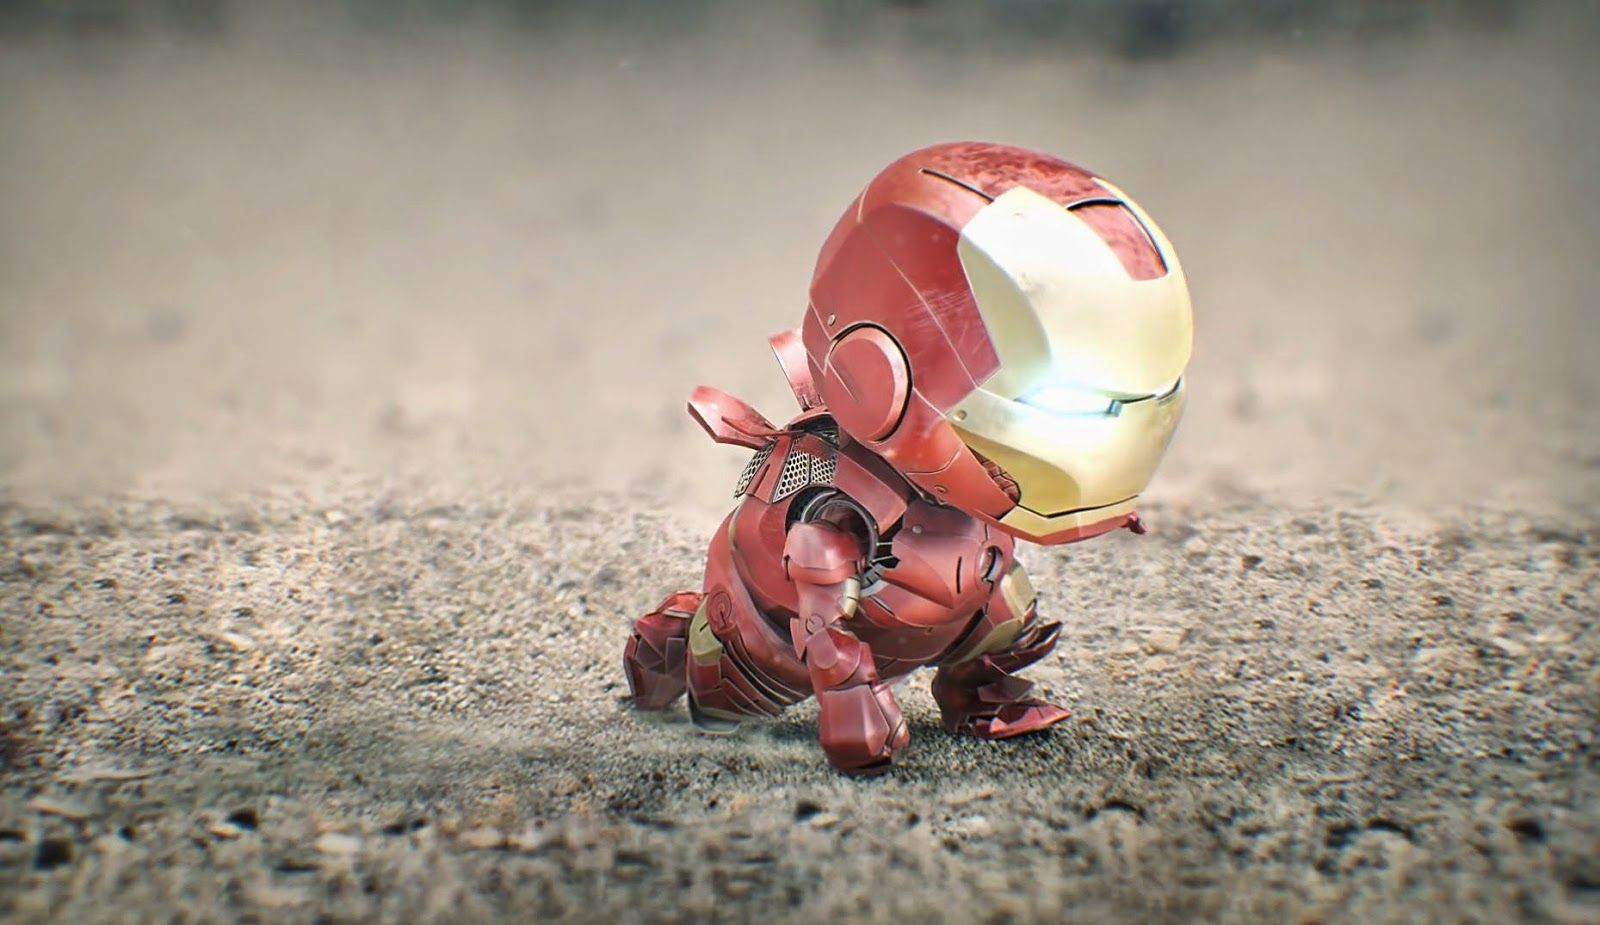 http://inspirations.cgrecord.net/2014/11/iron-baby-turtle-animation.html